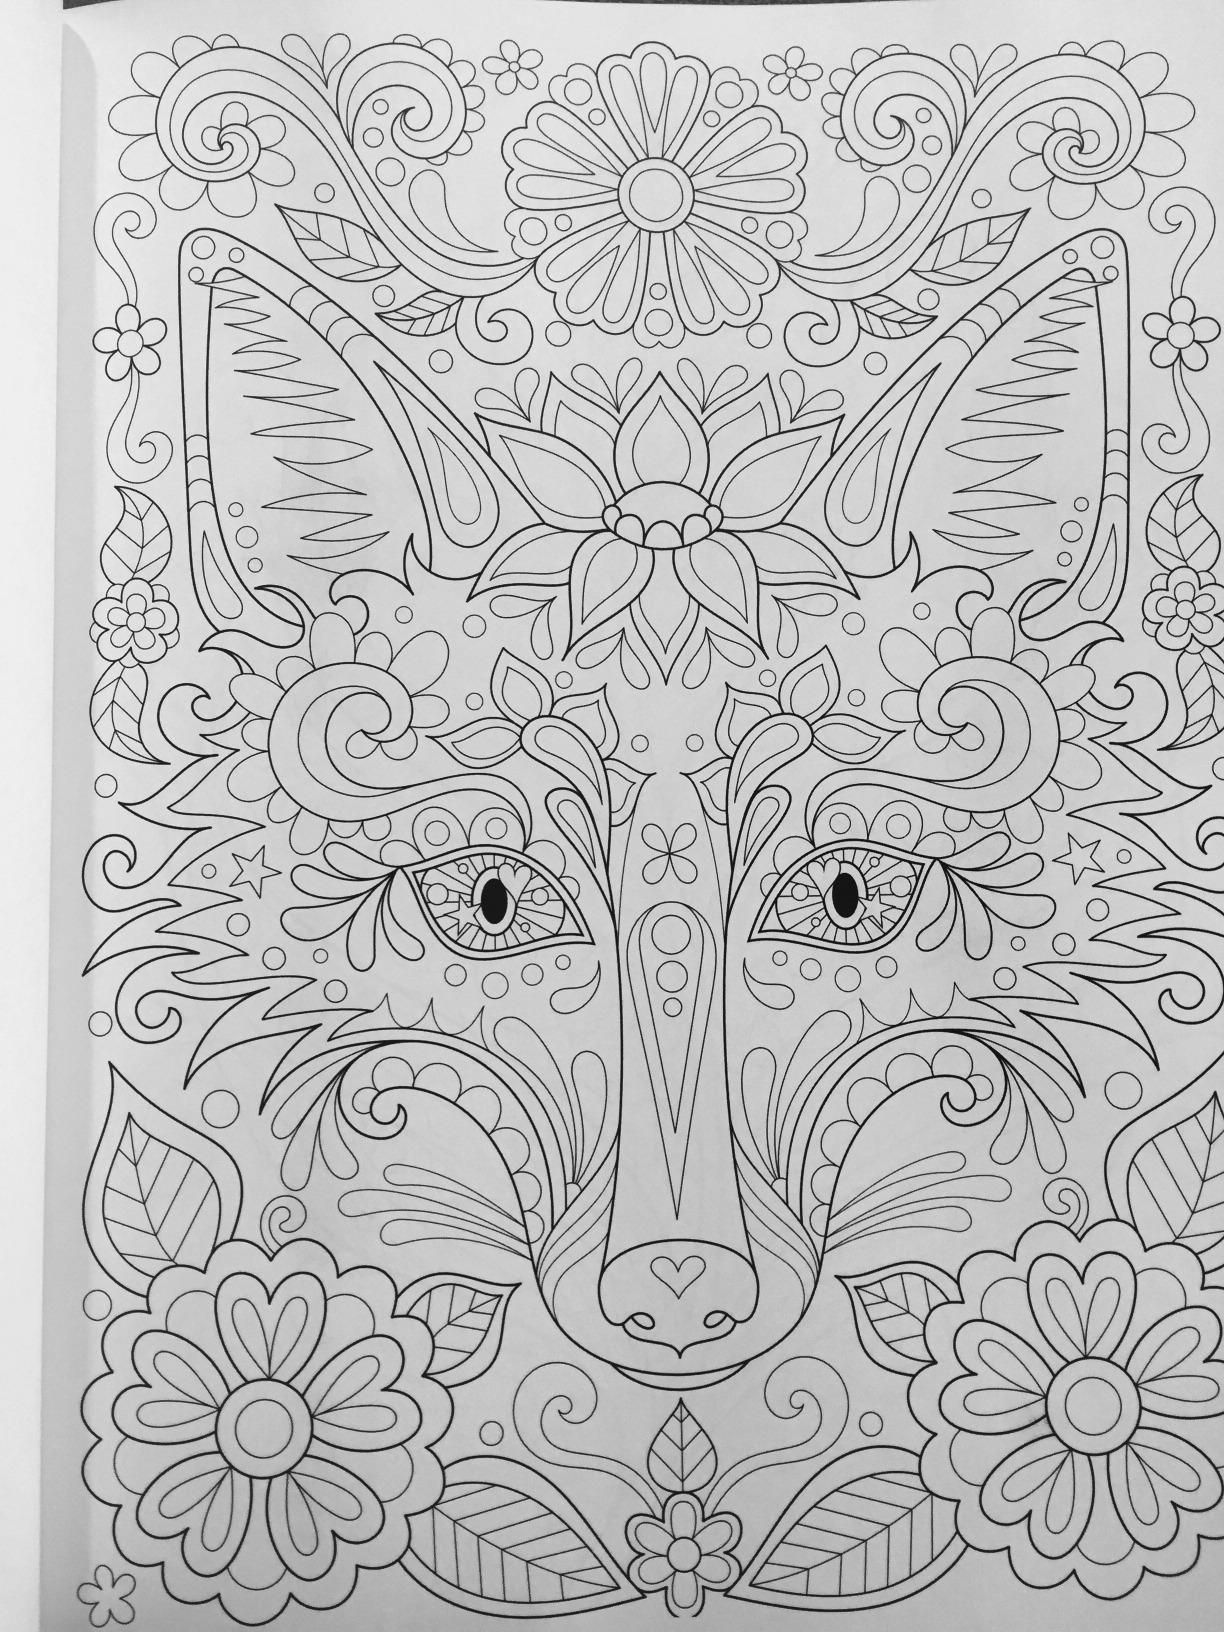 Robot Check Animal Coloring Pages Fox Coloring Page Coloring Pages